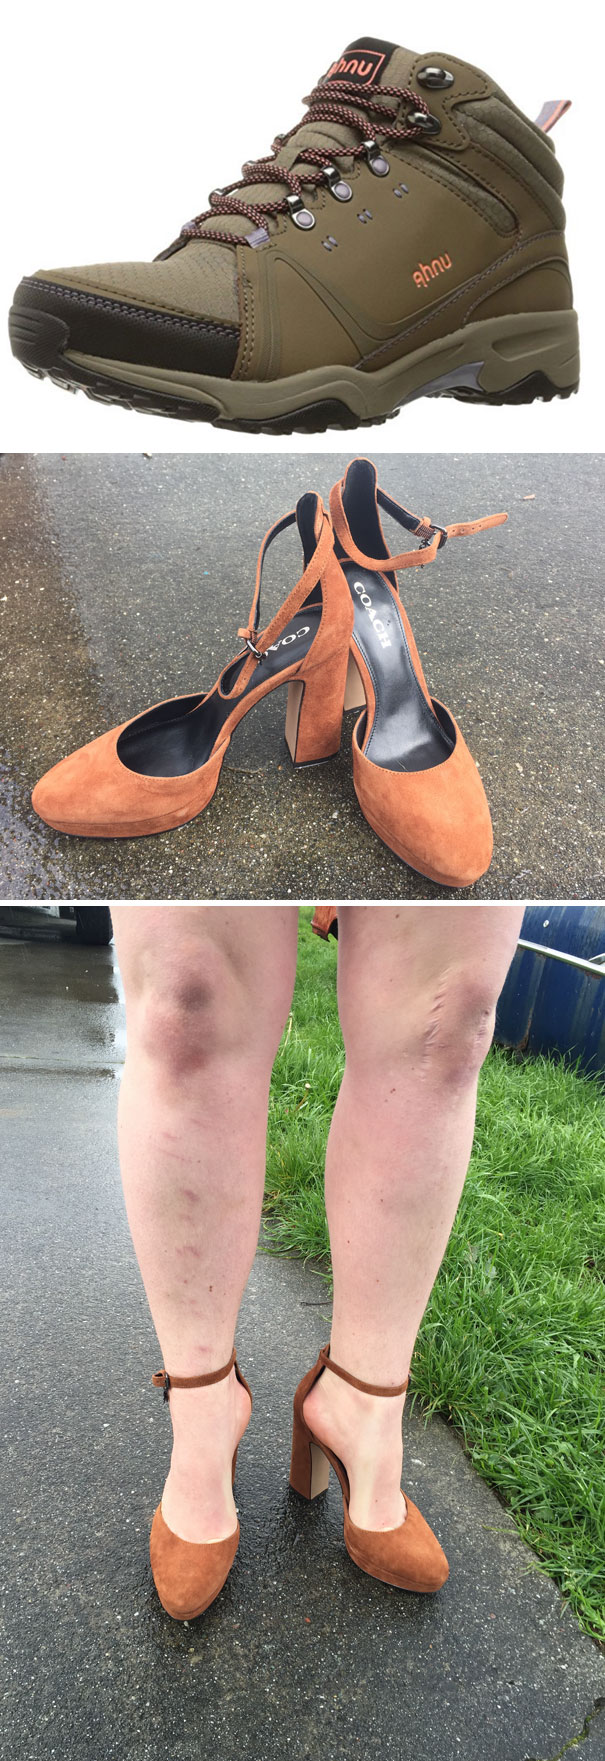 15+ Pictures The Demonstrate The Horrors Of Online Shopping